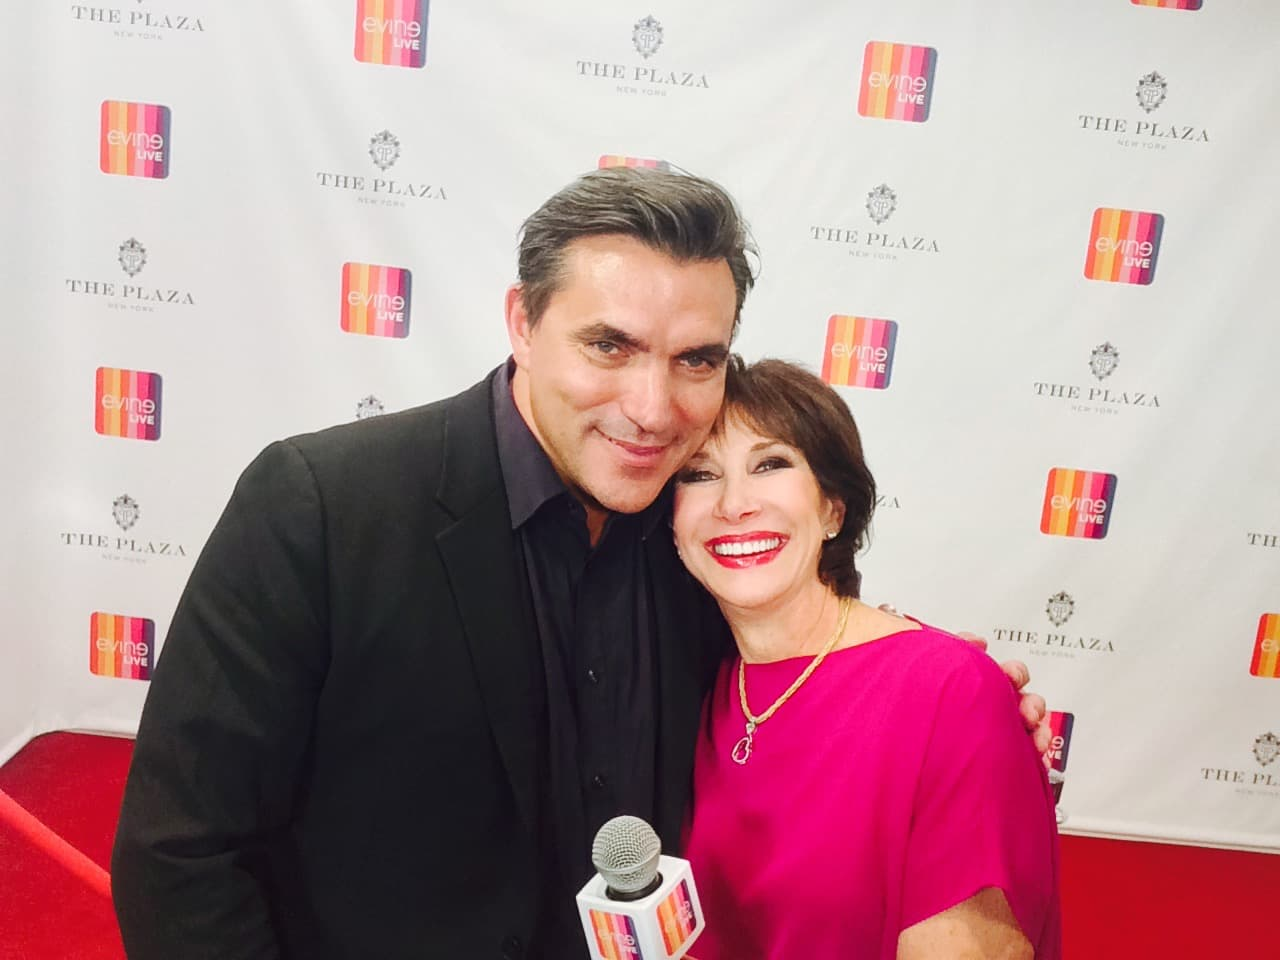 How To Be A Hsn Host Q A With Kathy Levine Swoon Talent